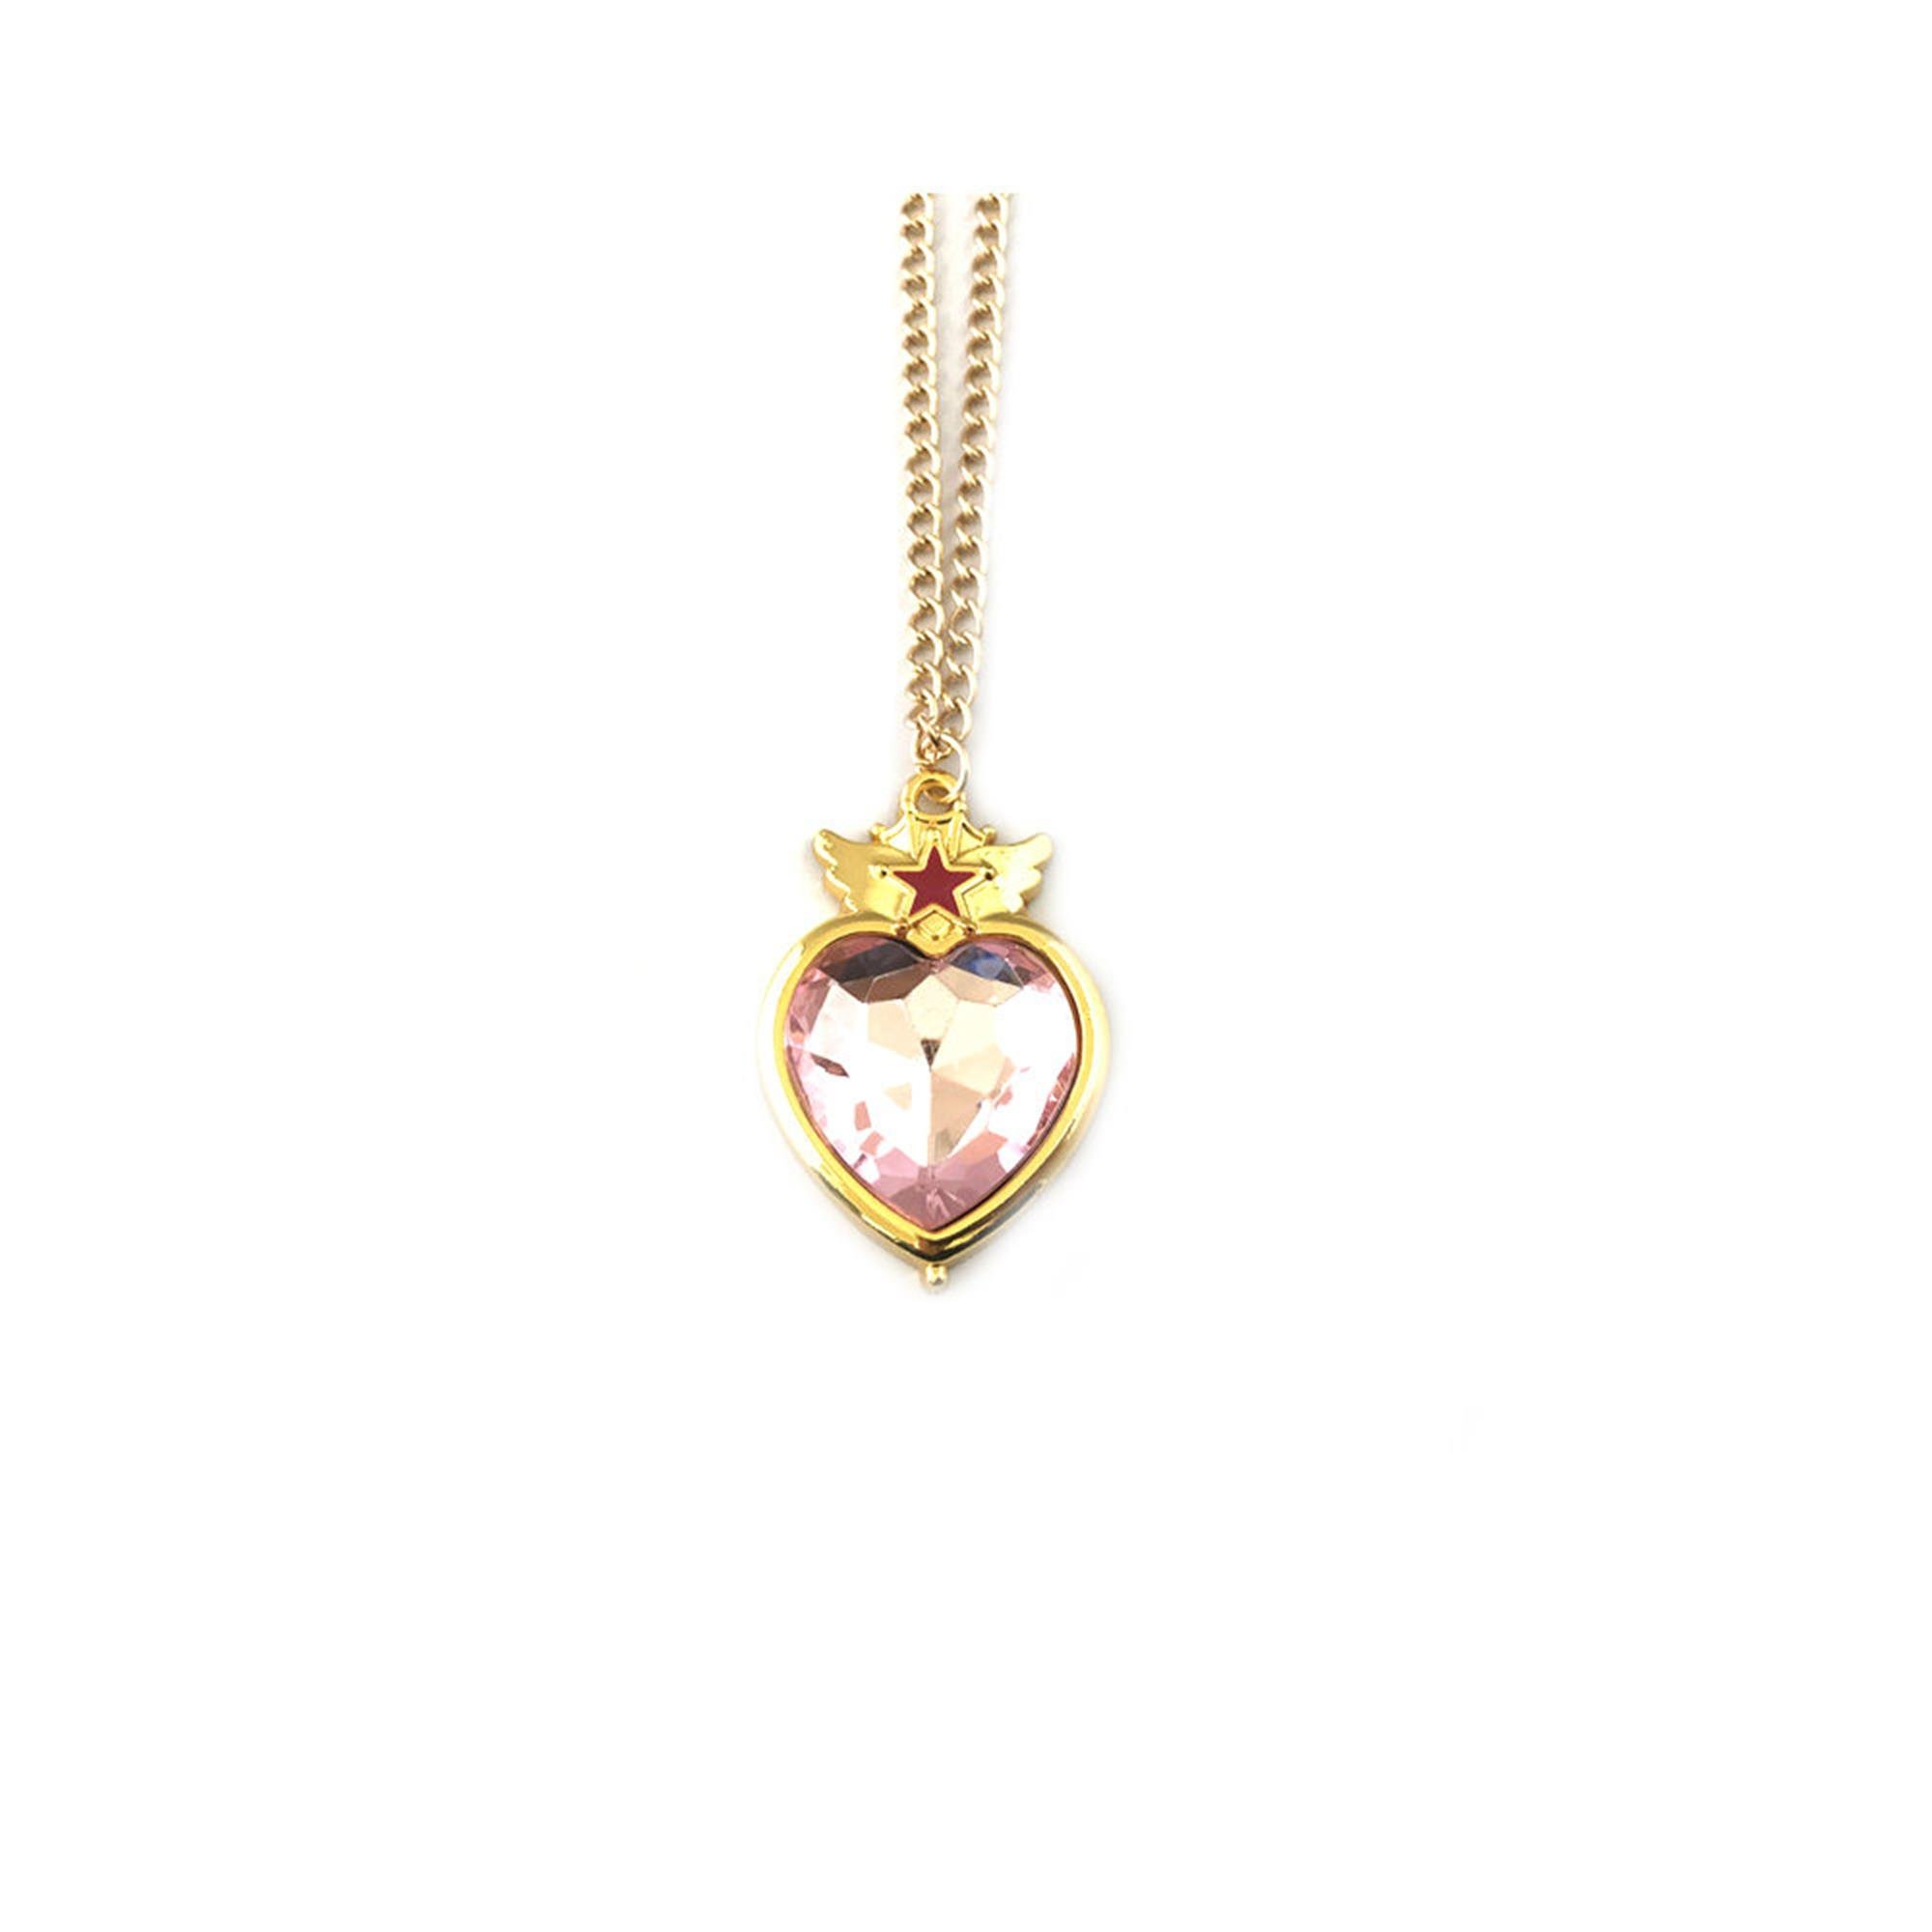 Athena Brand Sailor Moon Cosplay Anime Necklace By